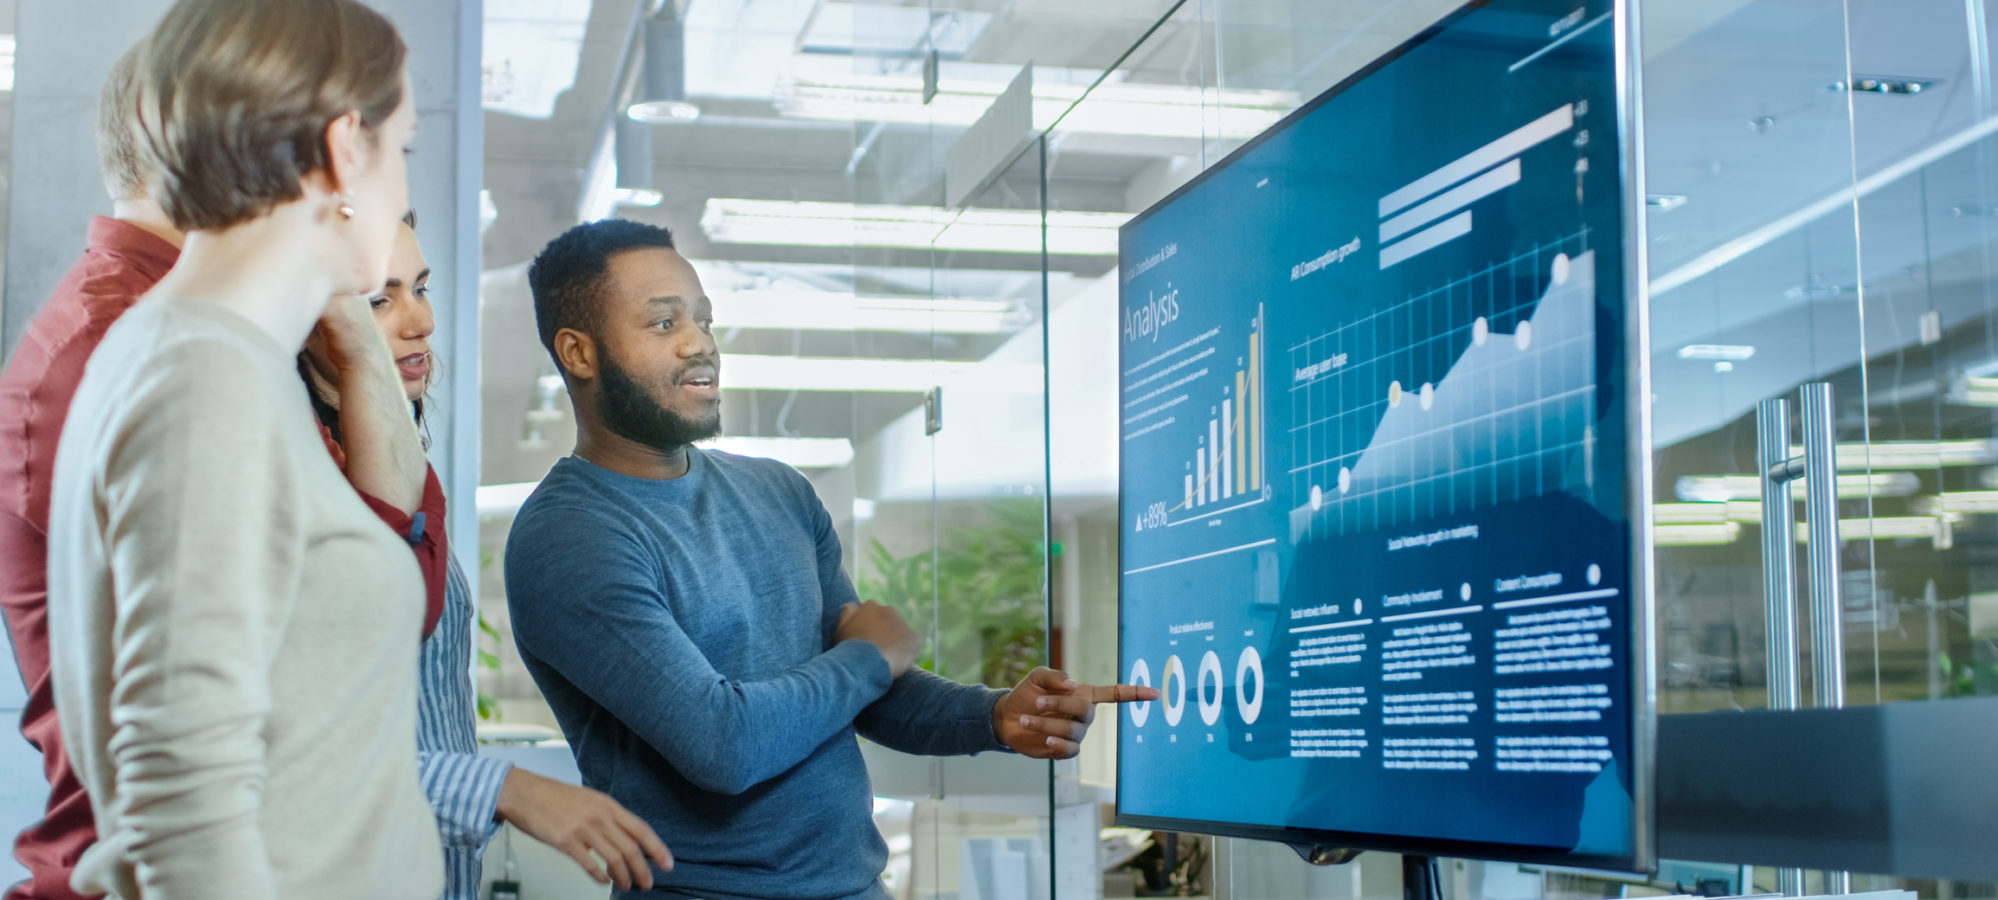 Four coworkers looking at company's real-time financial data on digital screen